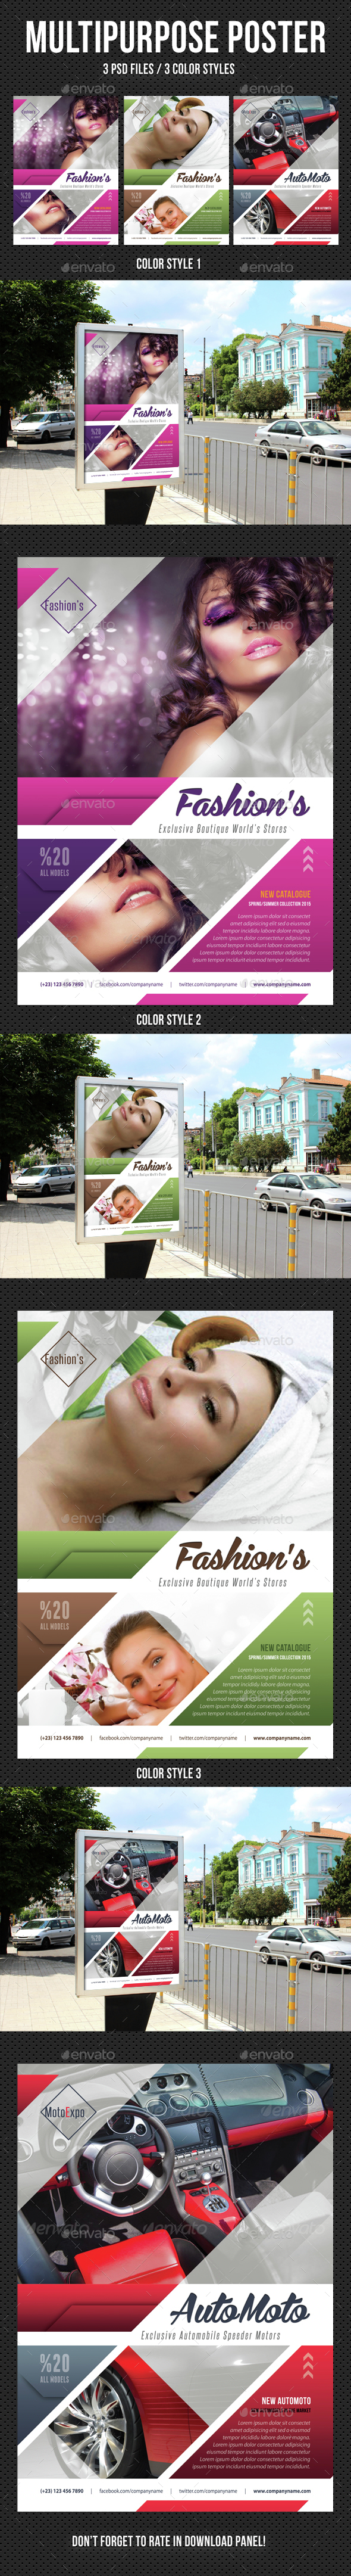 Multipurpose Flexible Poster 01 - Signage Print Templates